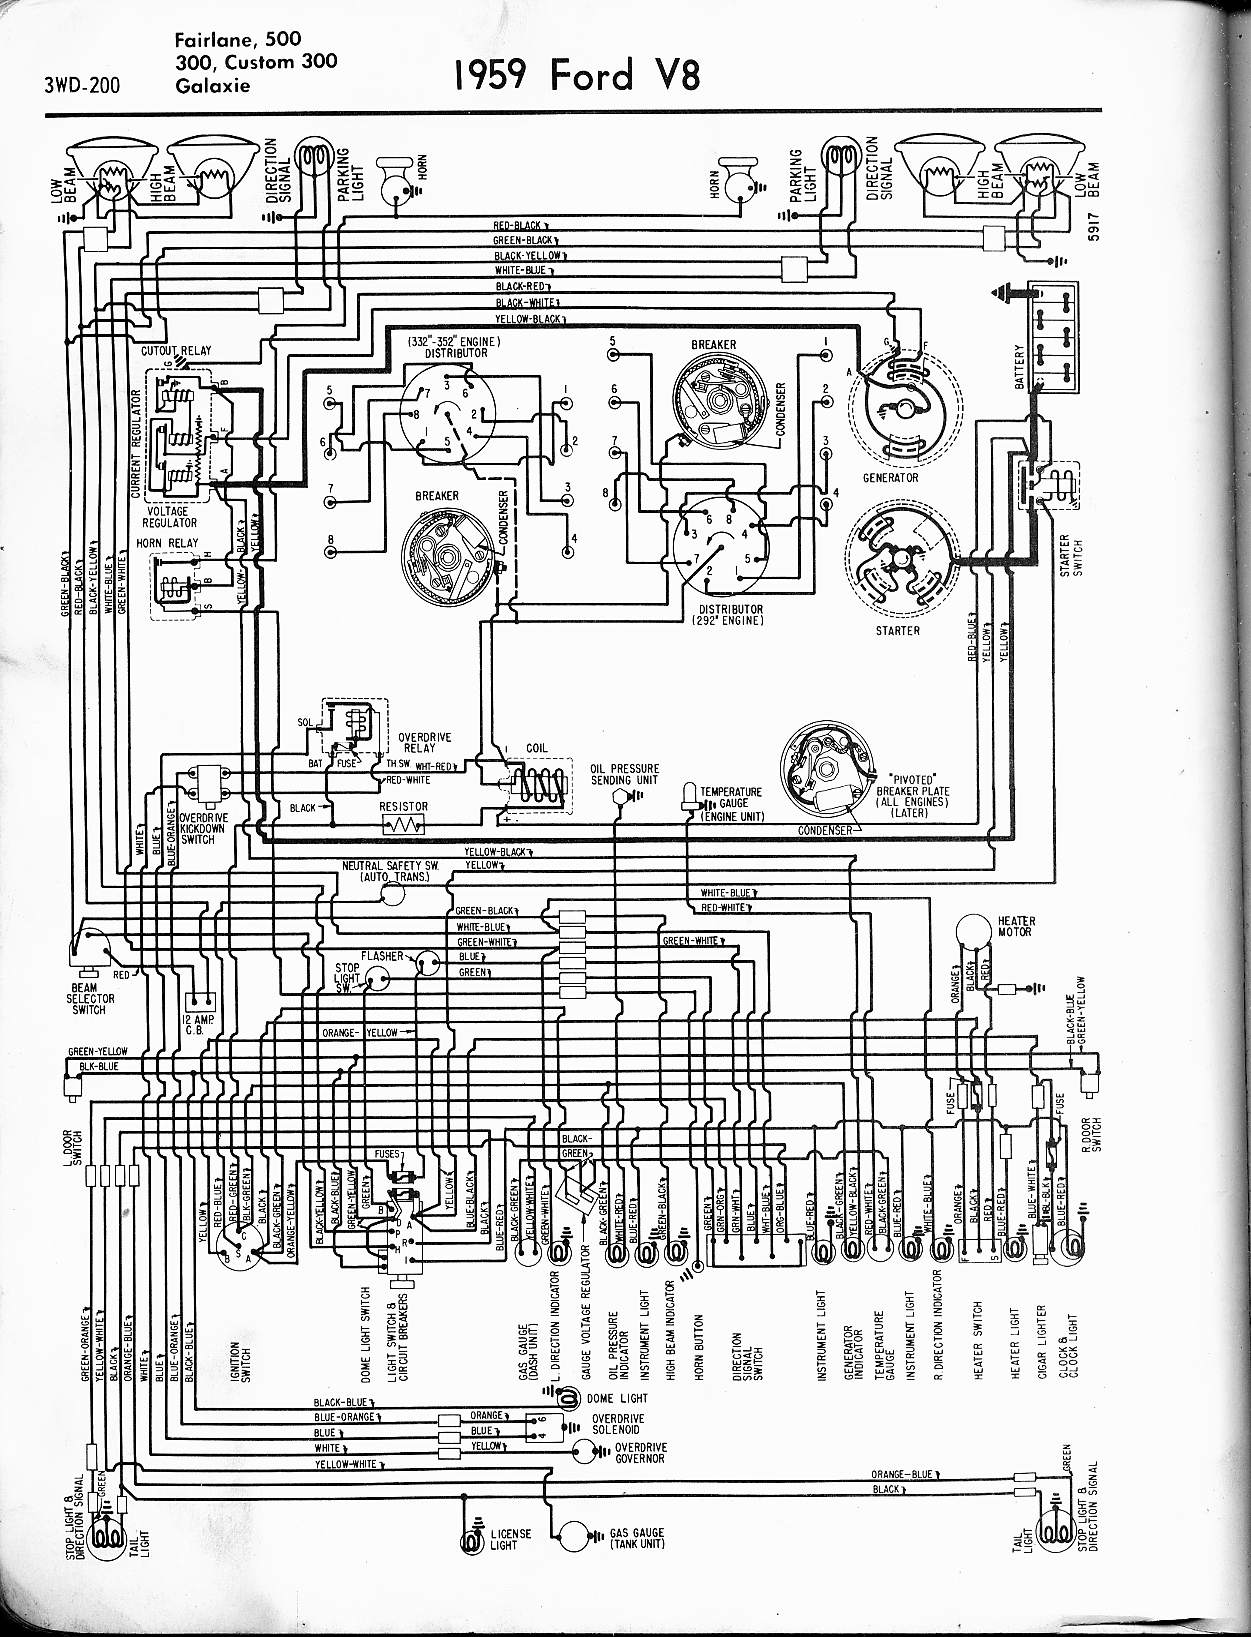 1956 Ford F100 Brake Wiring Library Fan Light Switch Diagram Furthermore F 150 Trailer Diagrams 1959 6 Cyl All Models V8 Fairlane 500 300 Custom